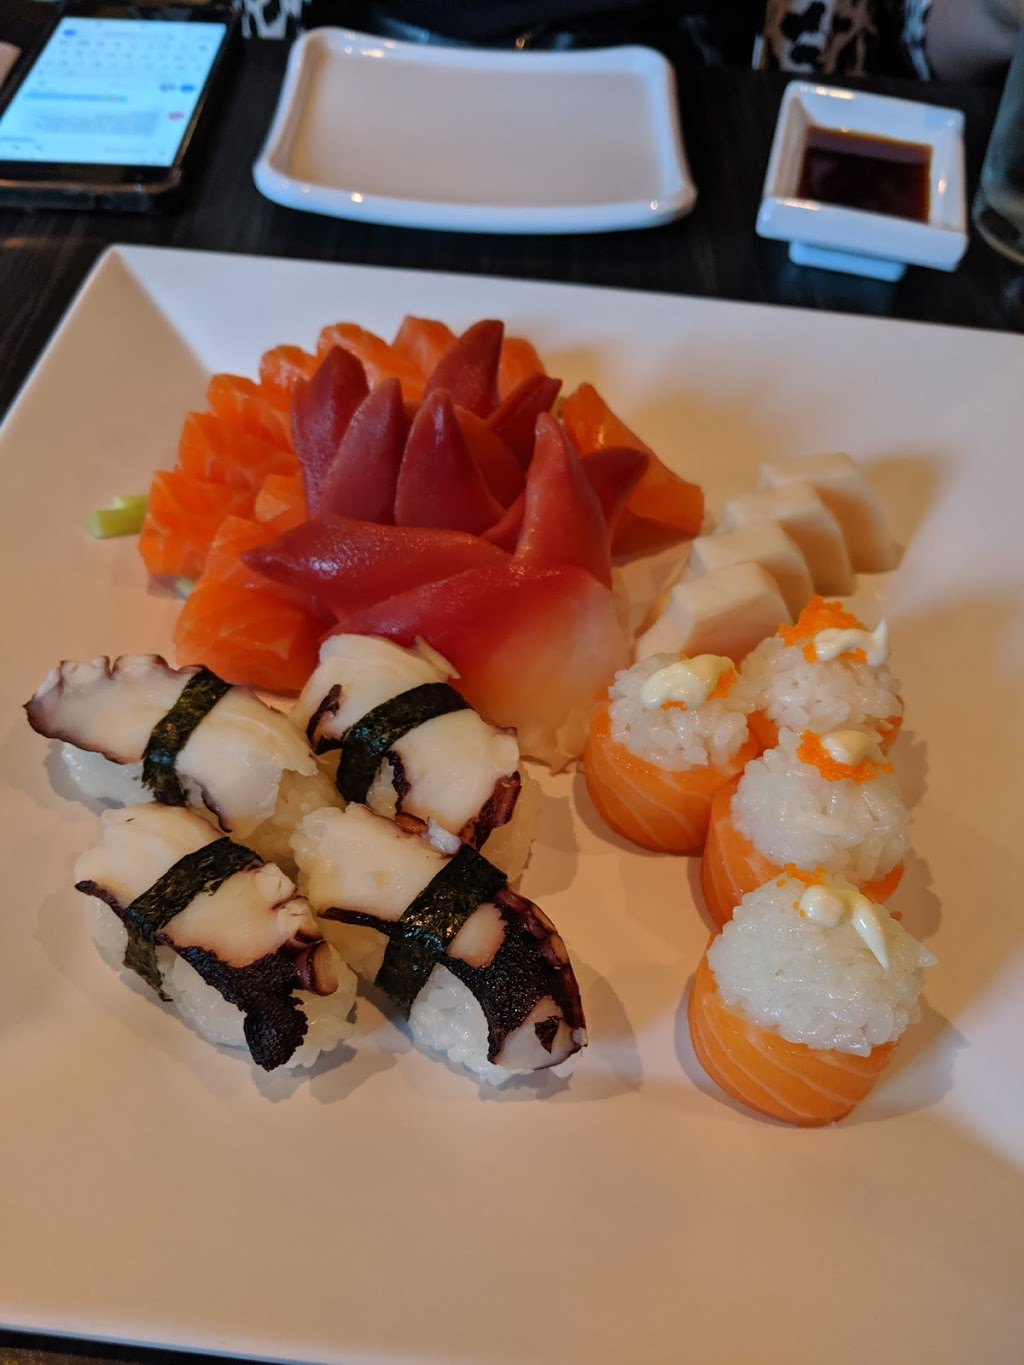 Sake Sushi | restaurant | 1571 Seacliff Dr, Kingsville, ON N9Y 2M5, Canada | 5193261688 OR +1 519-326-1688